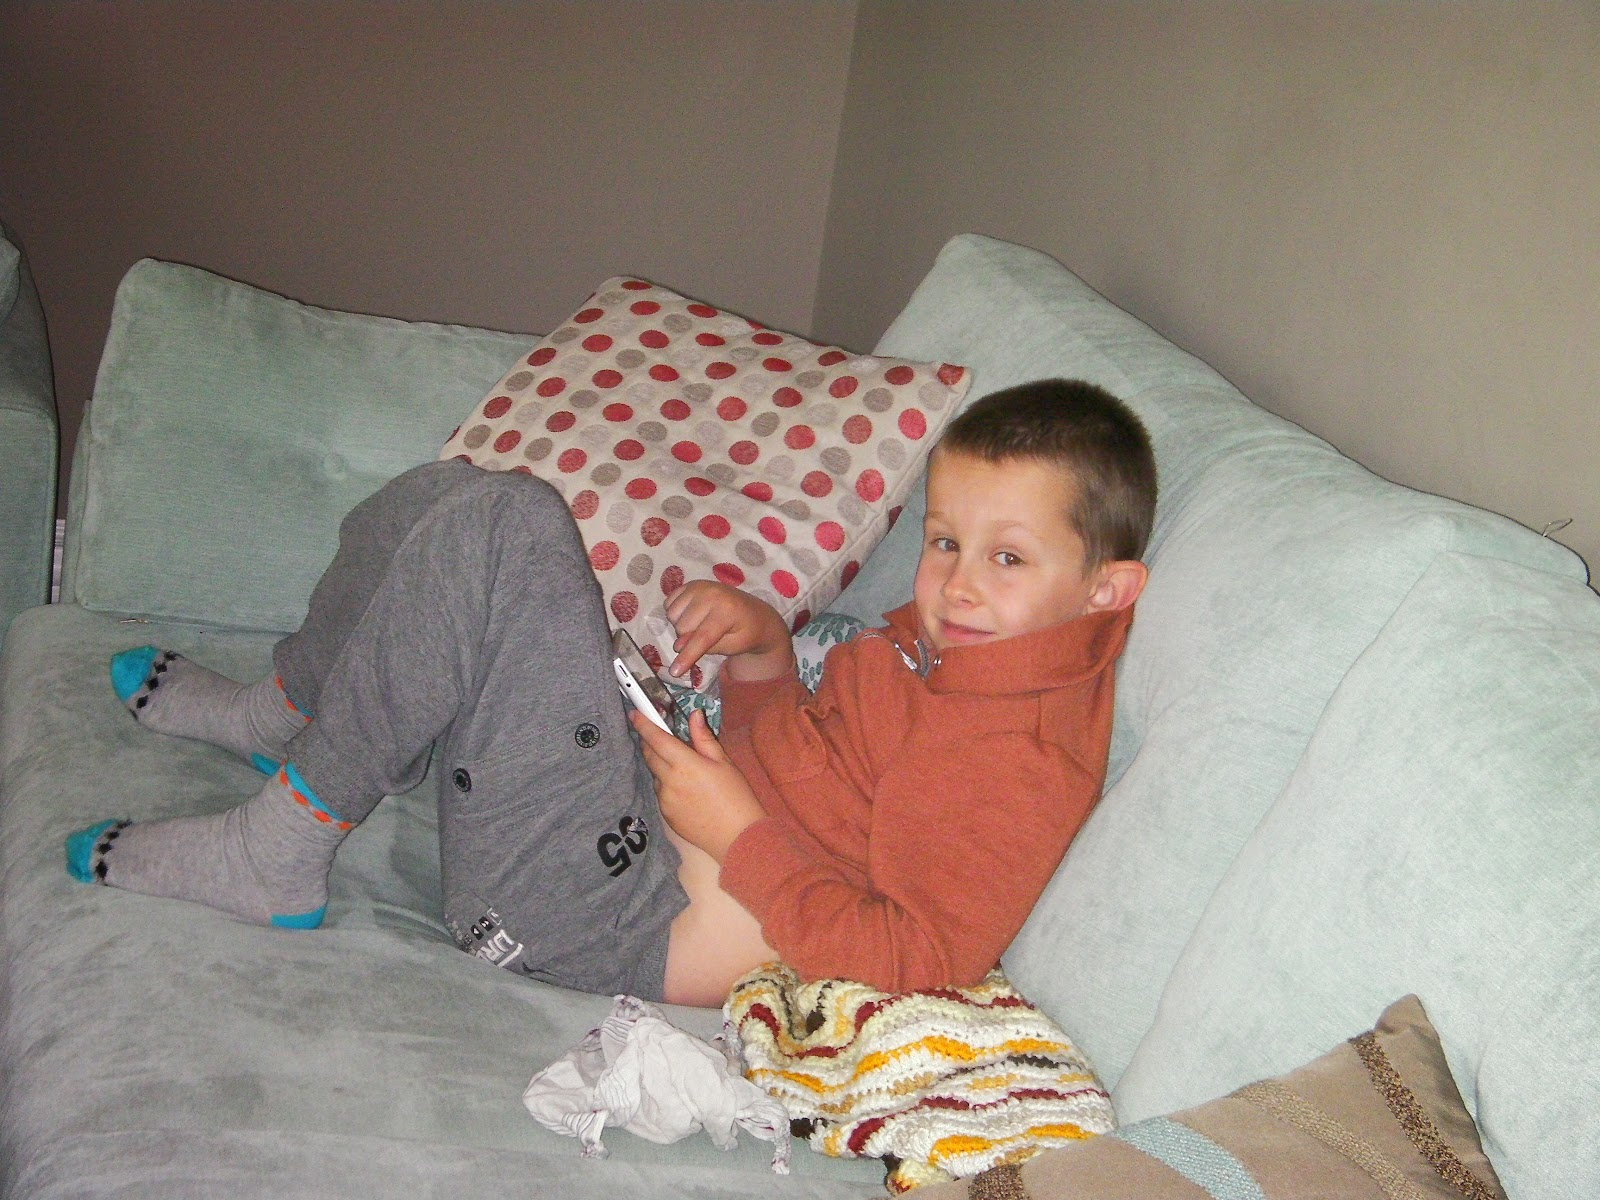 kid playing minecraft on tablet on sofa